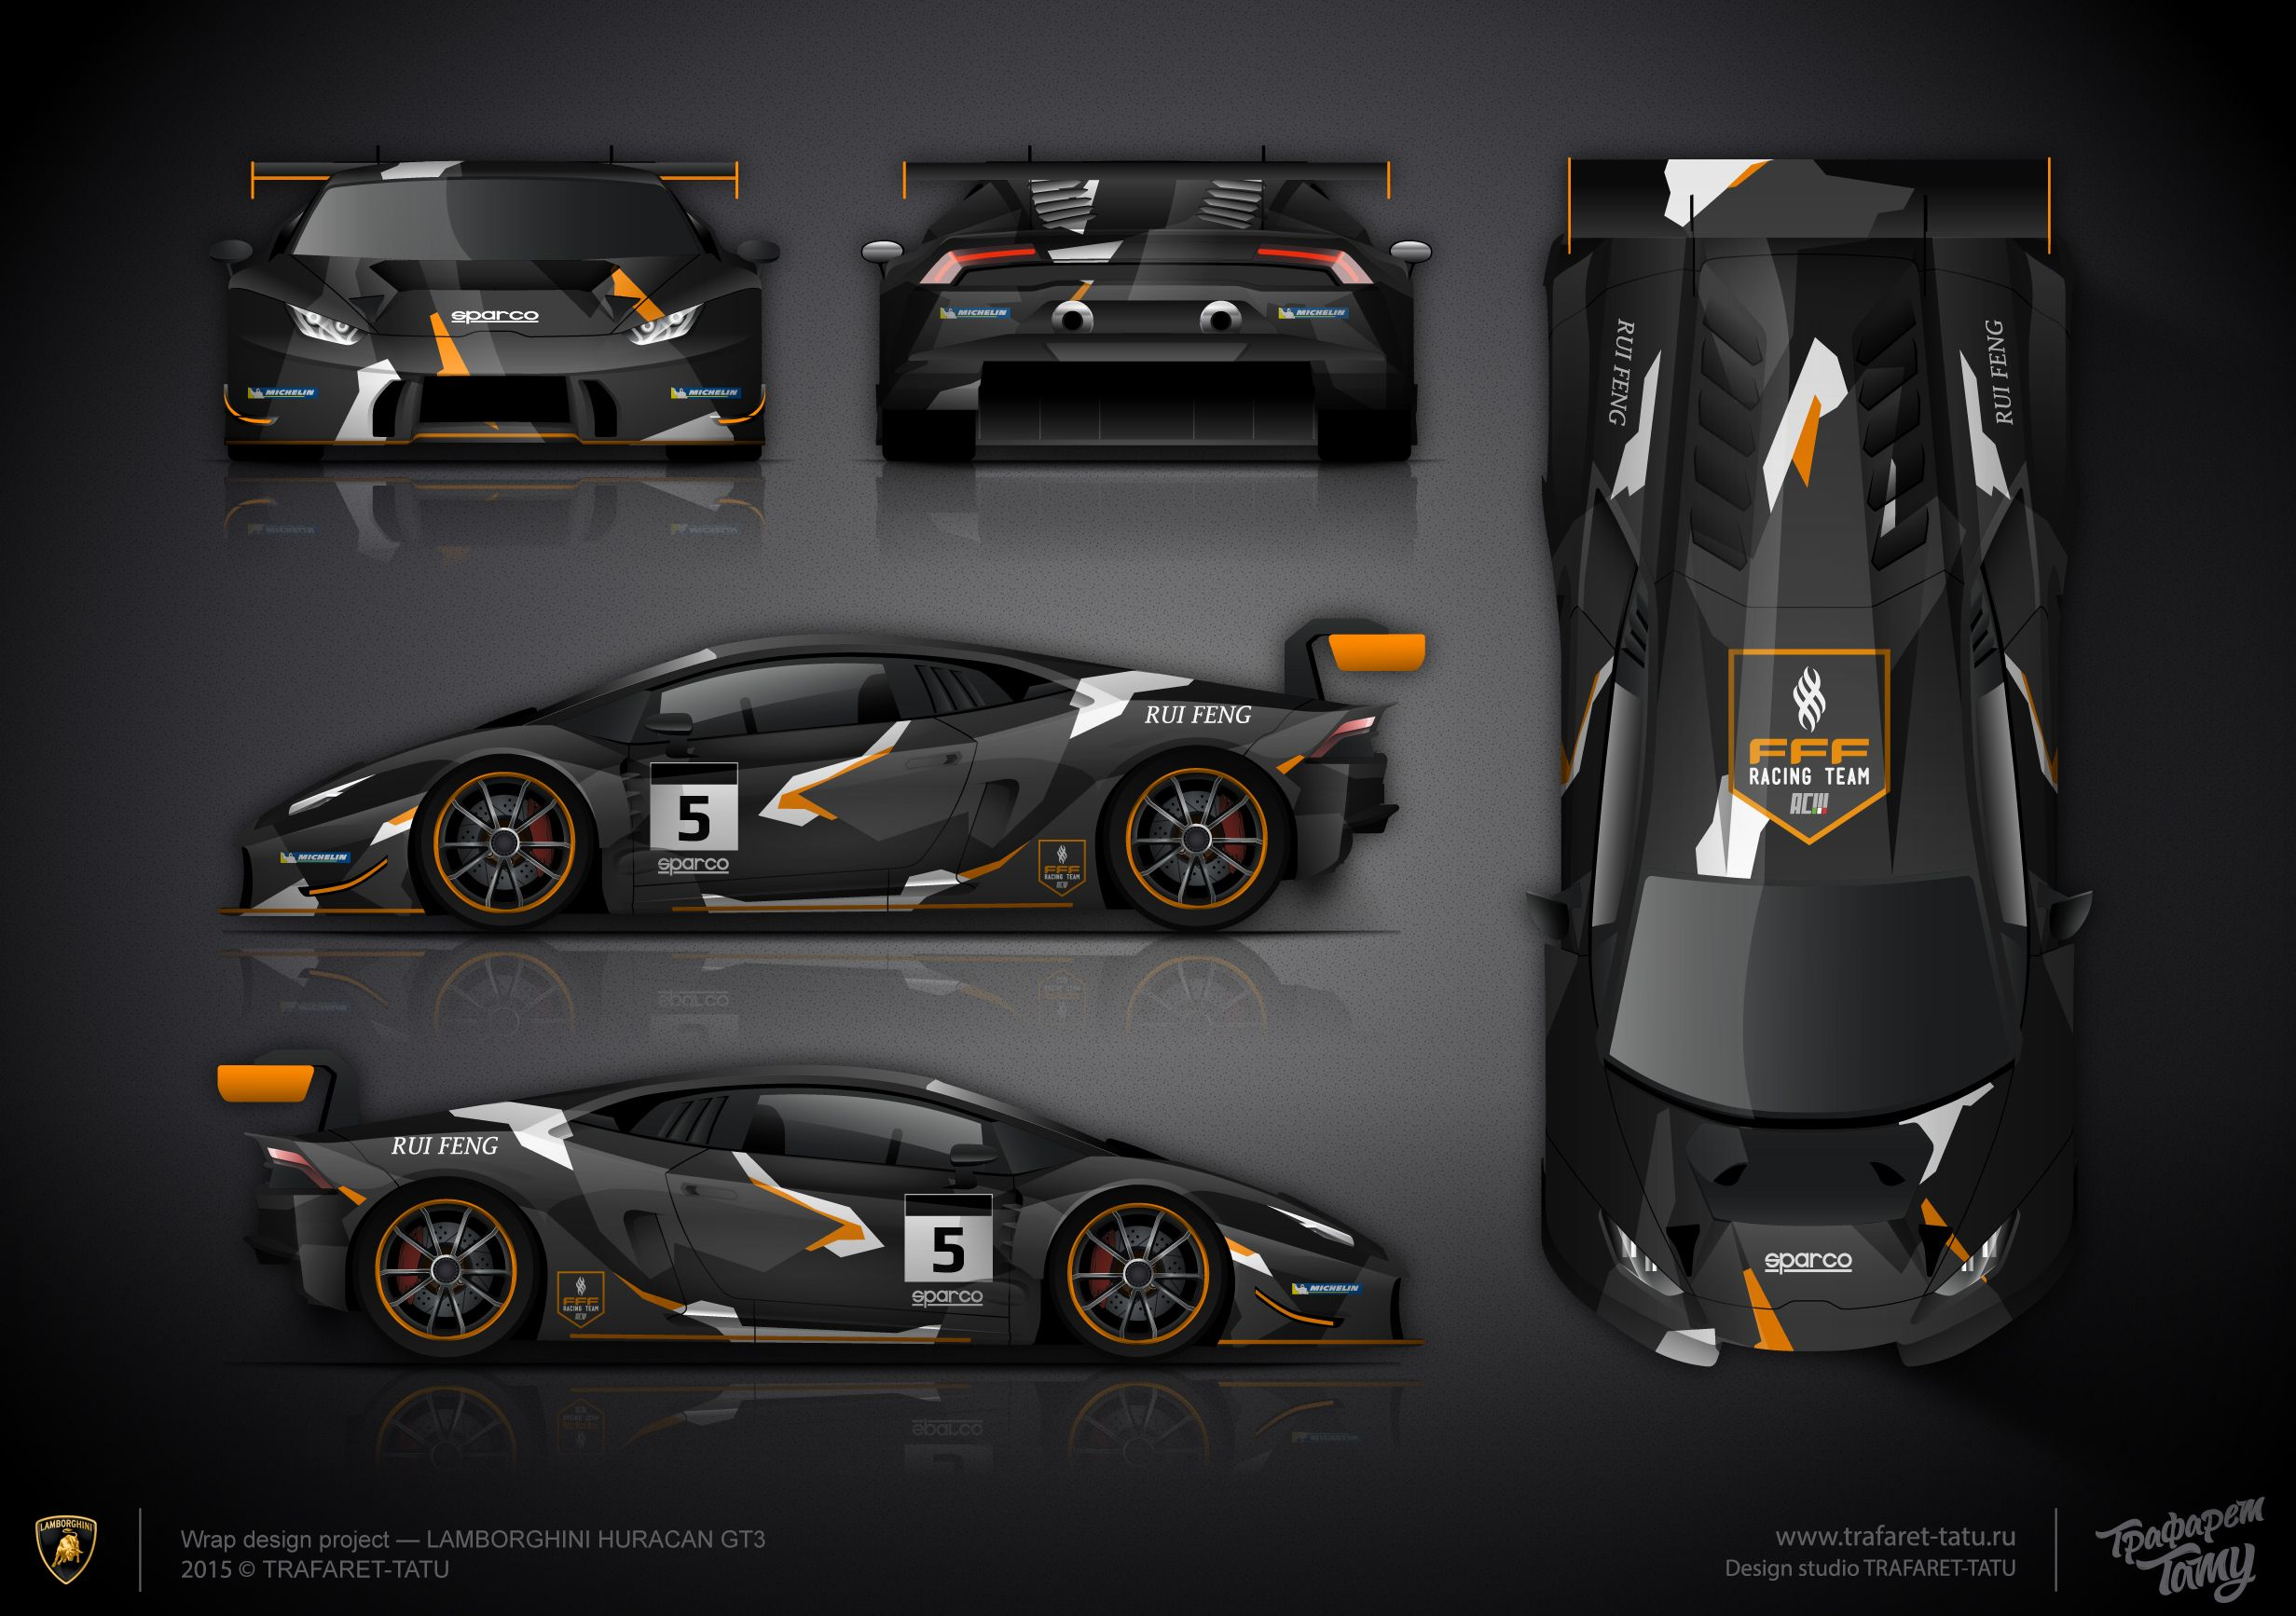 The Approved Livery Design For LAMBORGHINI HURACAN GT For The FFF - Racing car decals designpng race car wraps pinterest cars